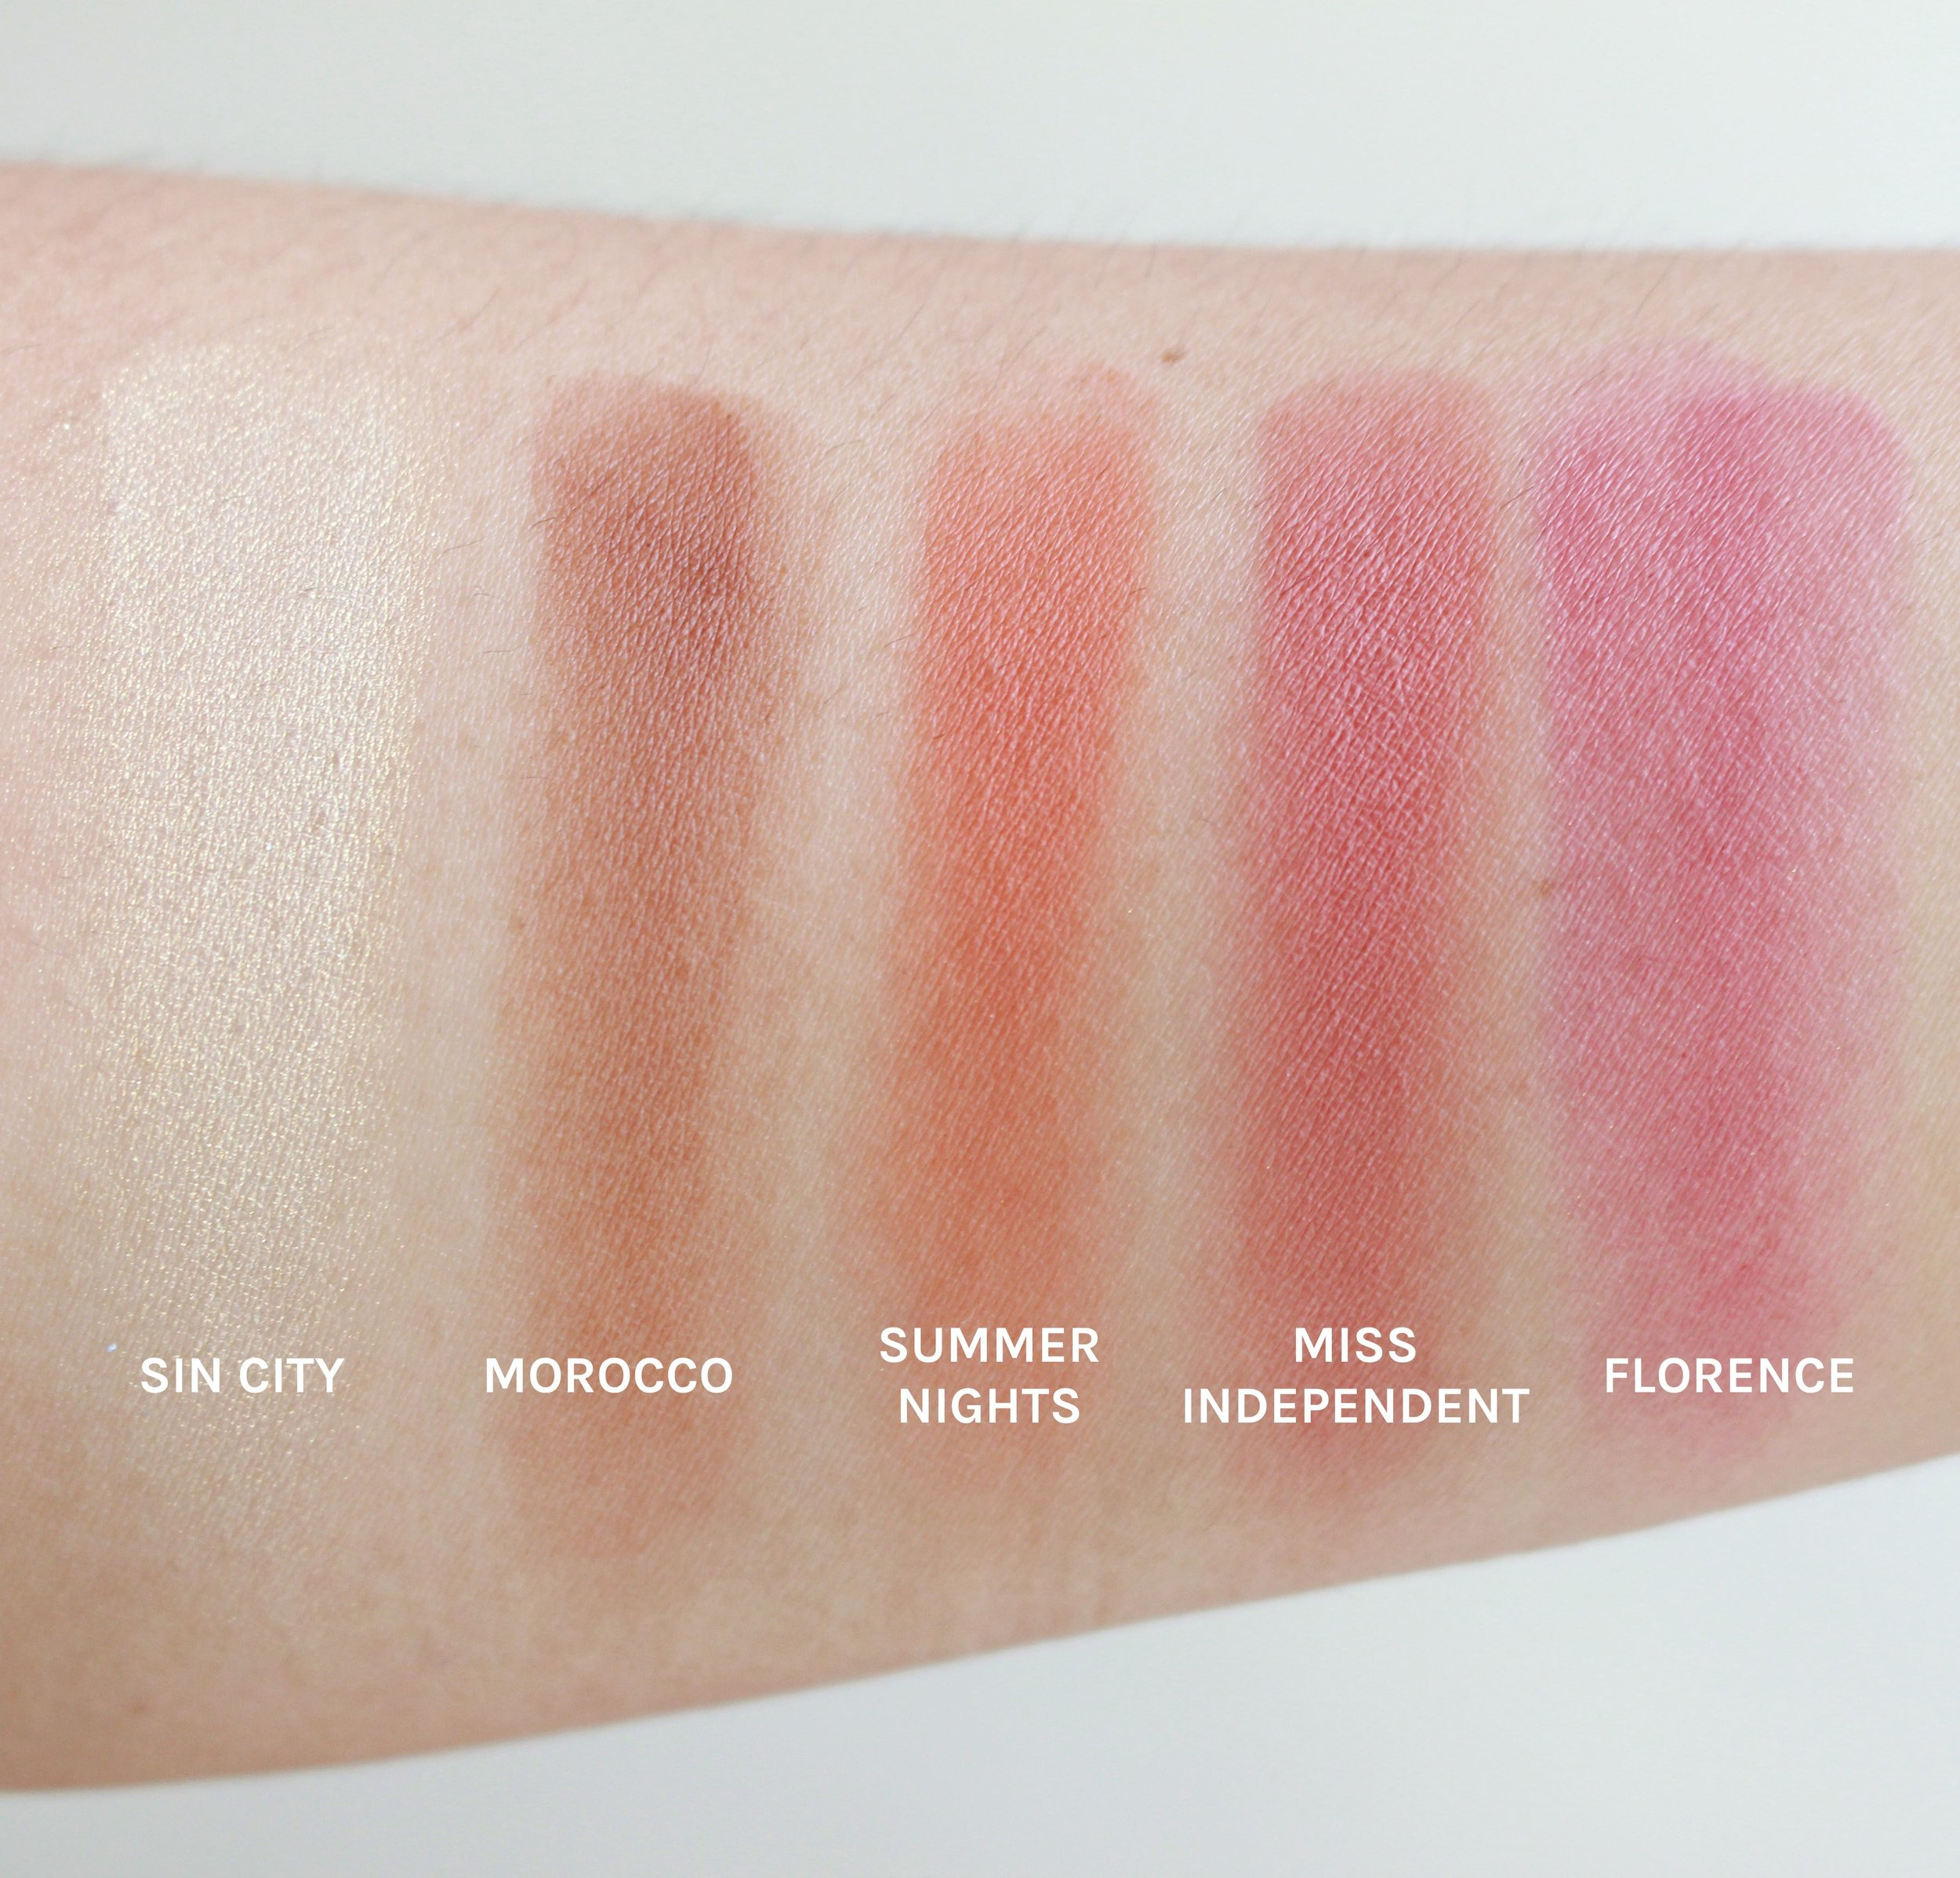 Save for Sin City, the four shades are all matte